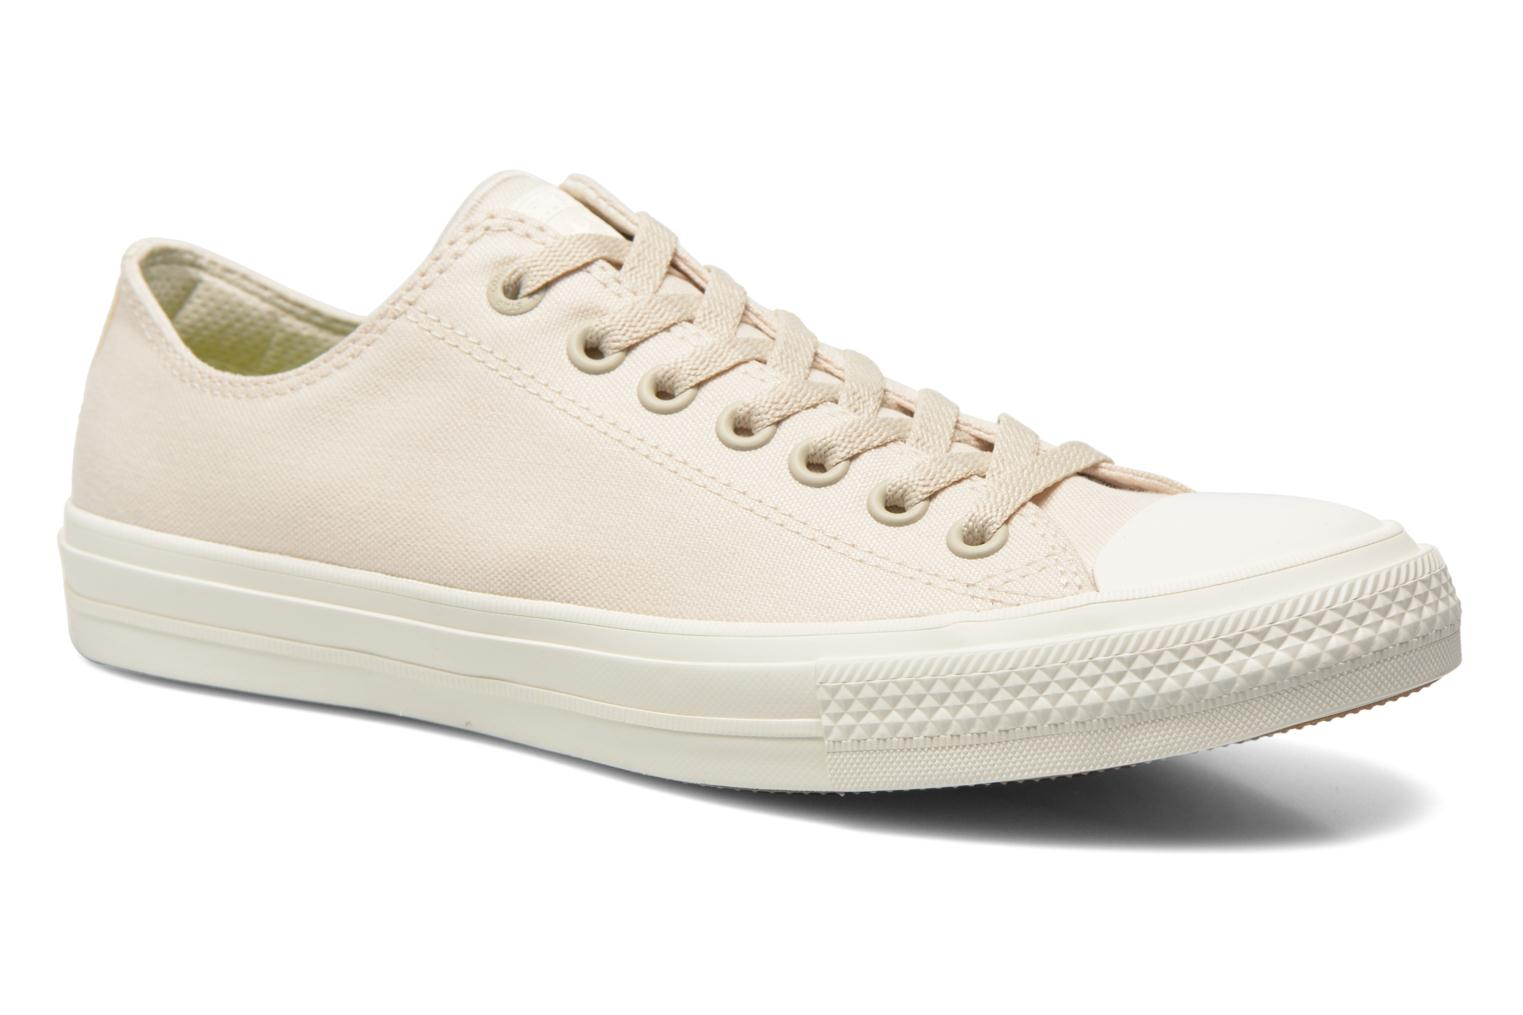 Chuck Taylor All Star II Ox M Parchment/Navy/White